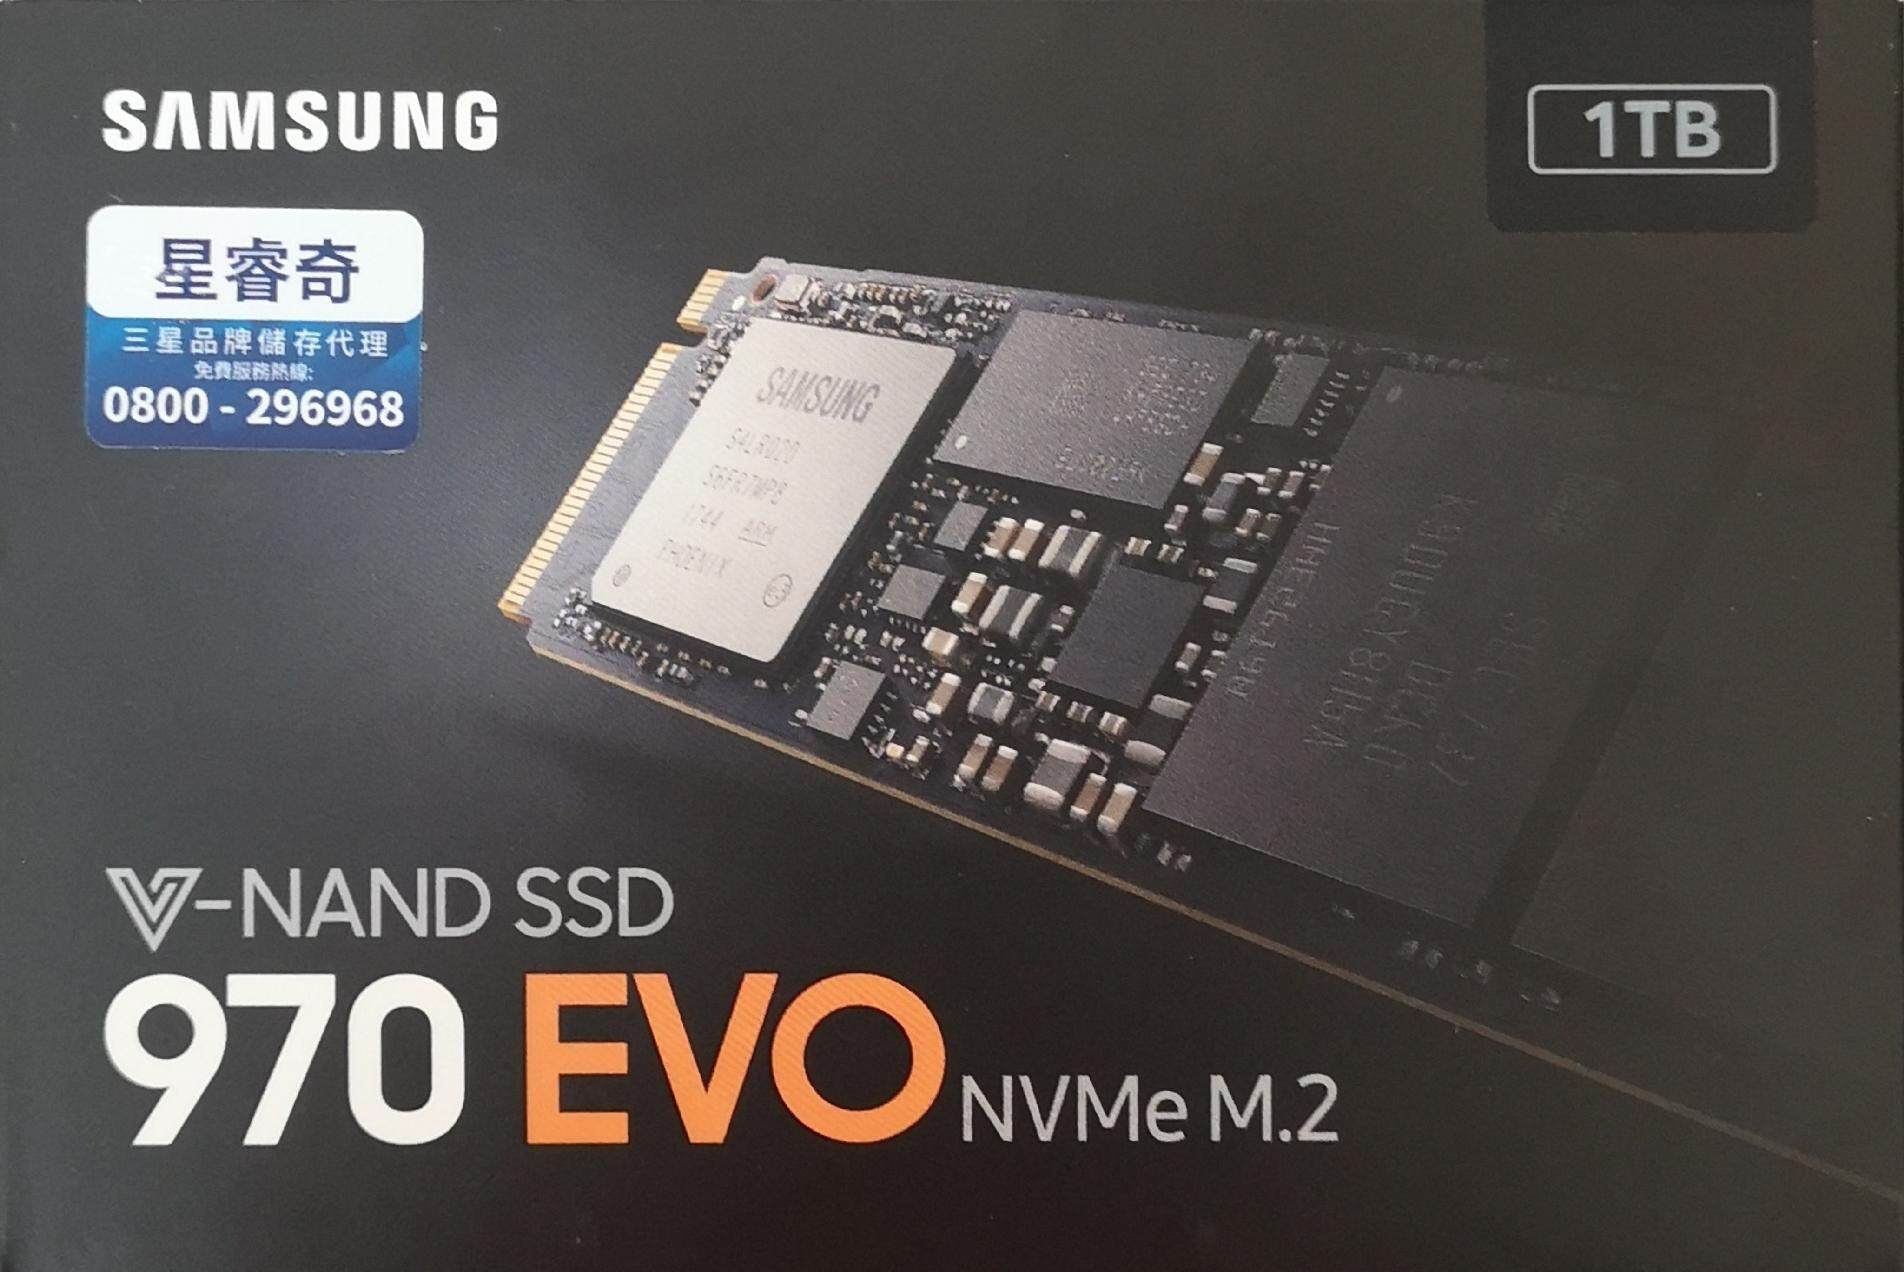 Ssd Samsung 970 Evo M.2 1tb New By P.c.hero.